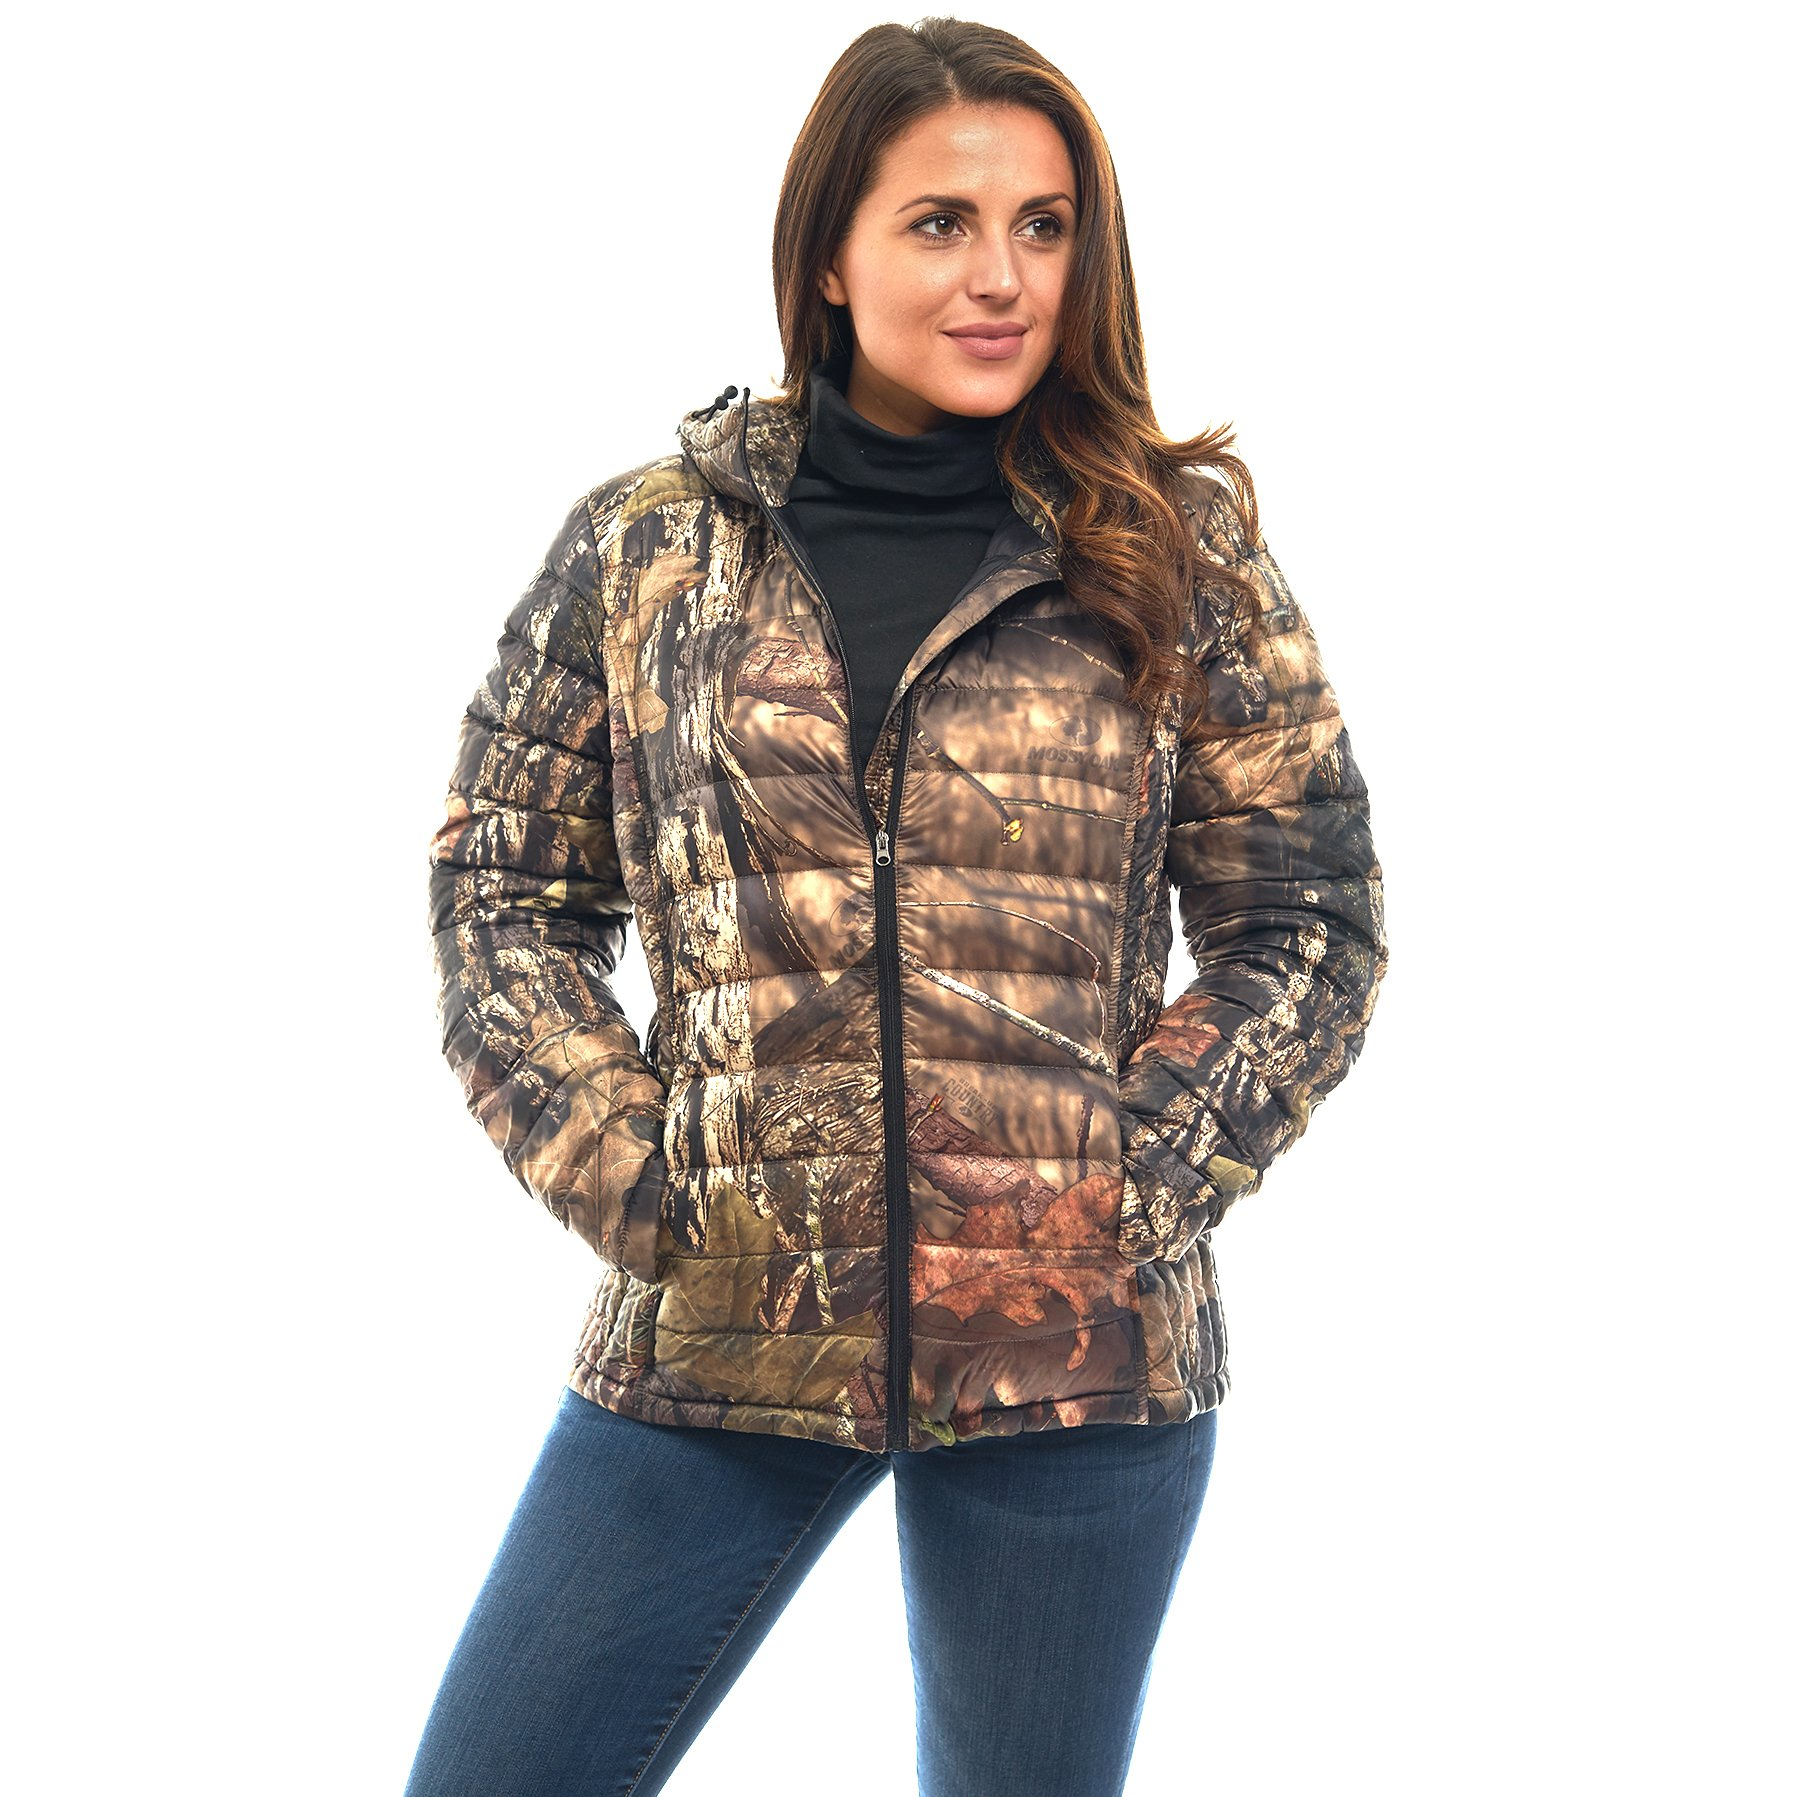 TrailCrest Women's Packable Ultra Lightweight Down Jacket, Outdoor Puffer Coats, Mossy Oak Break-Up Country Camo (X-Small)